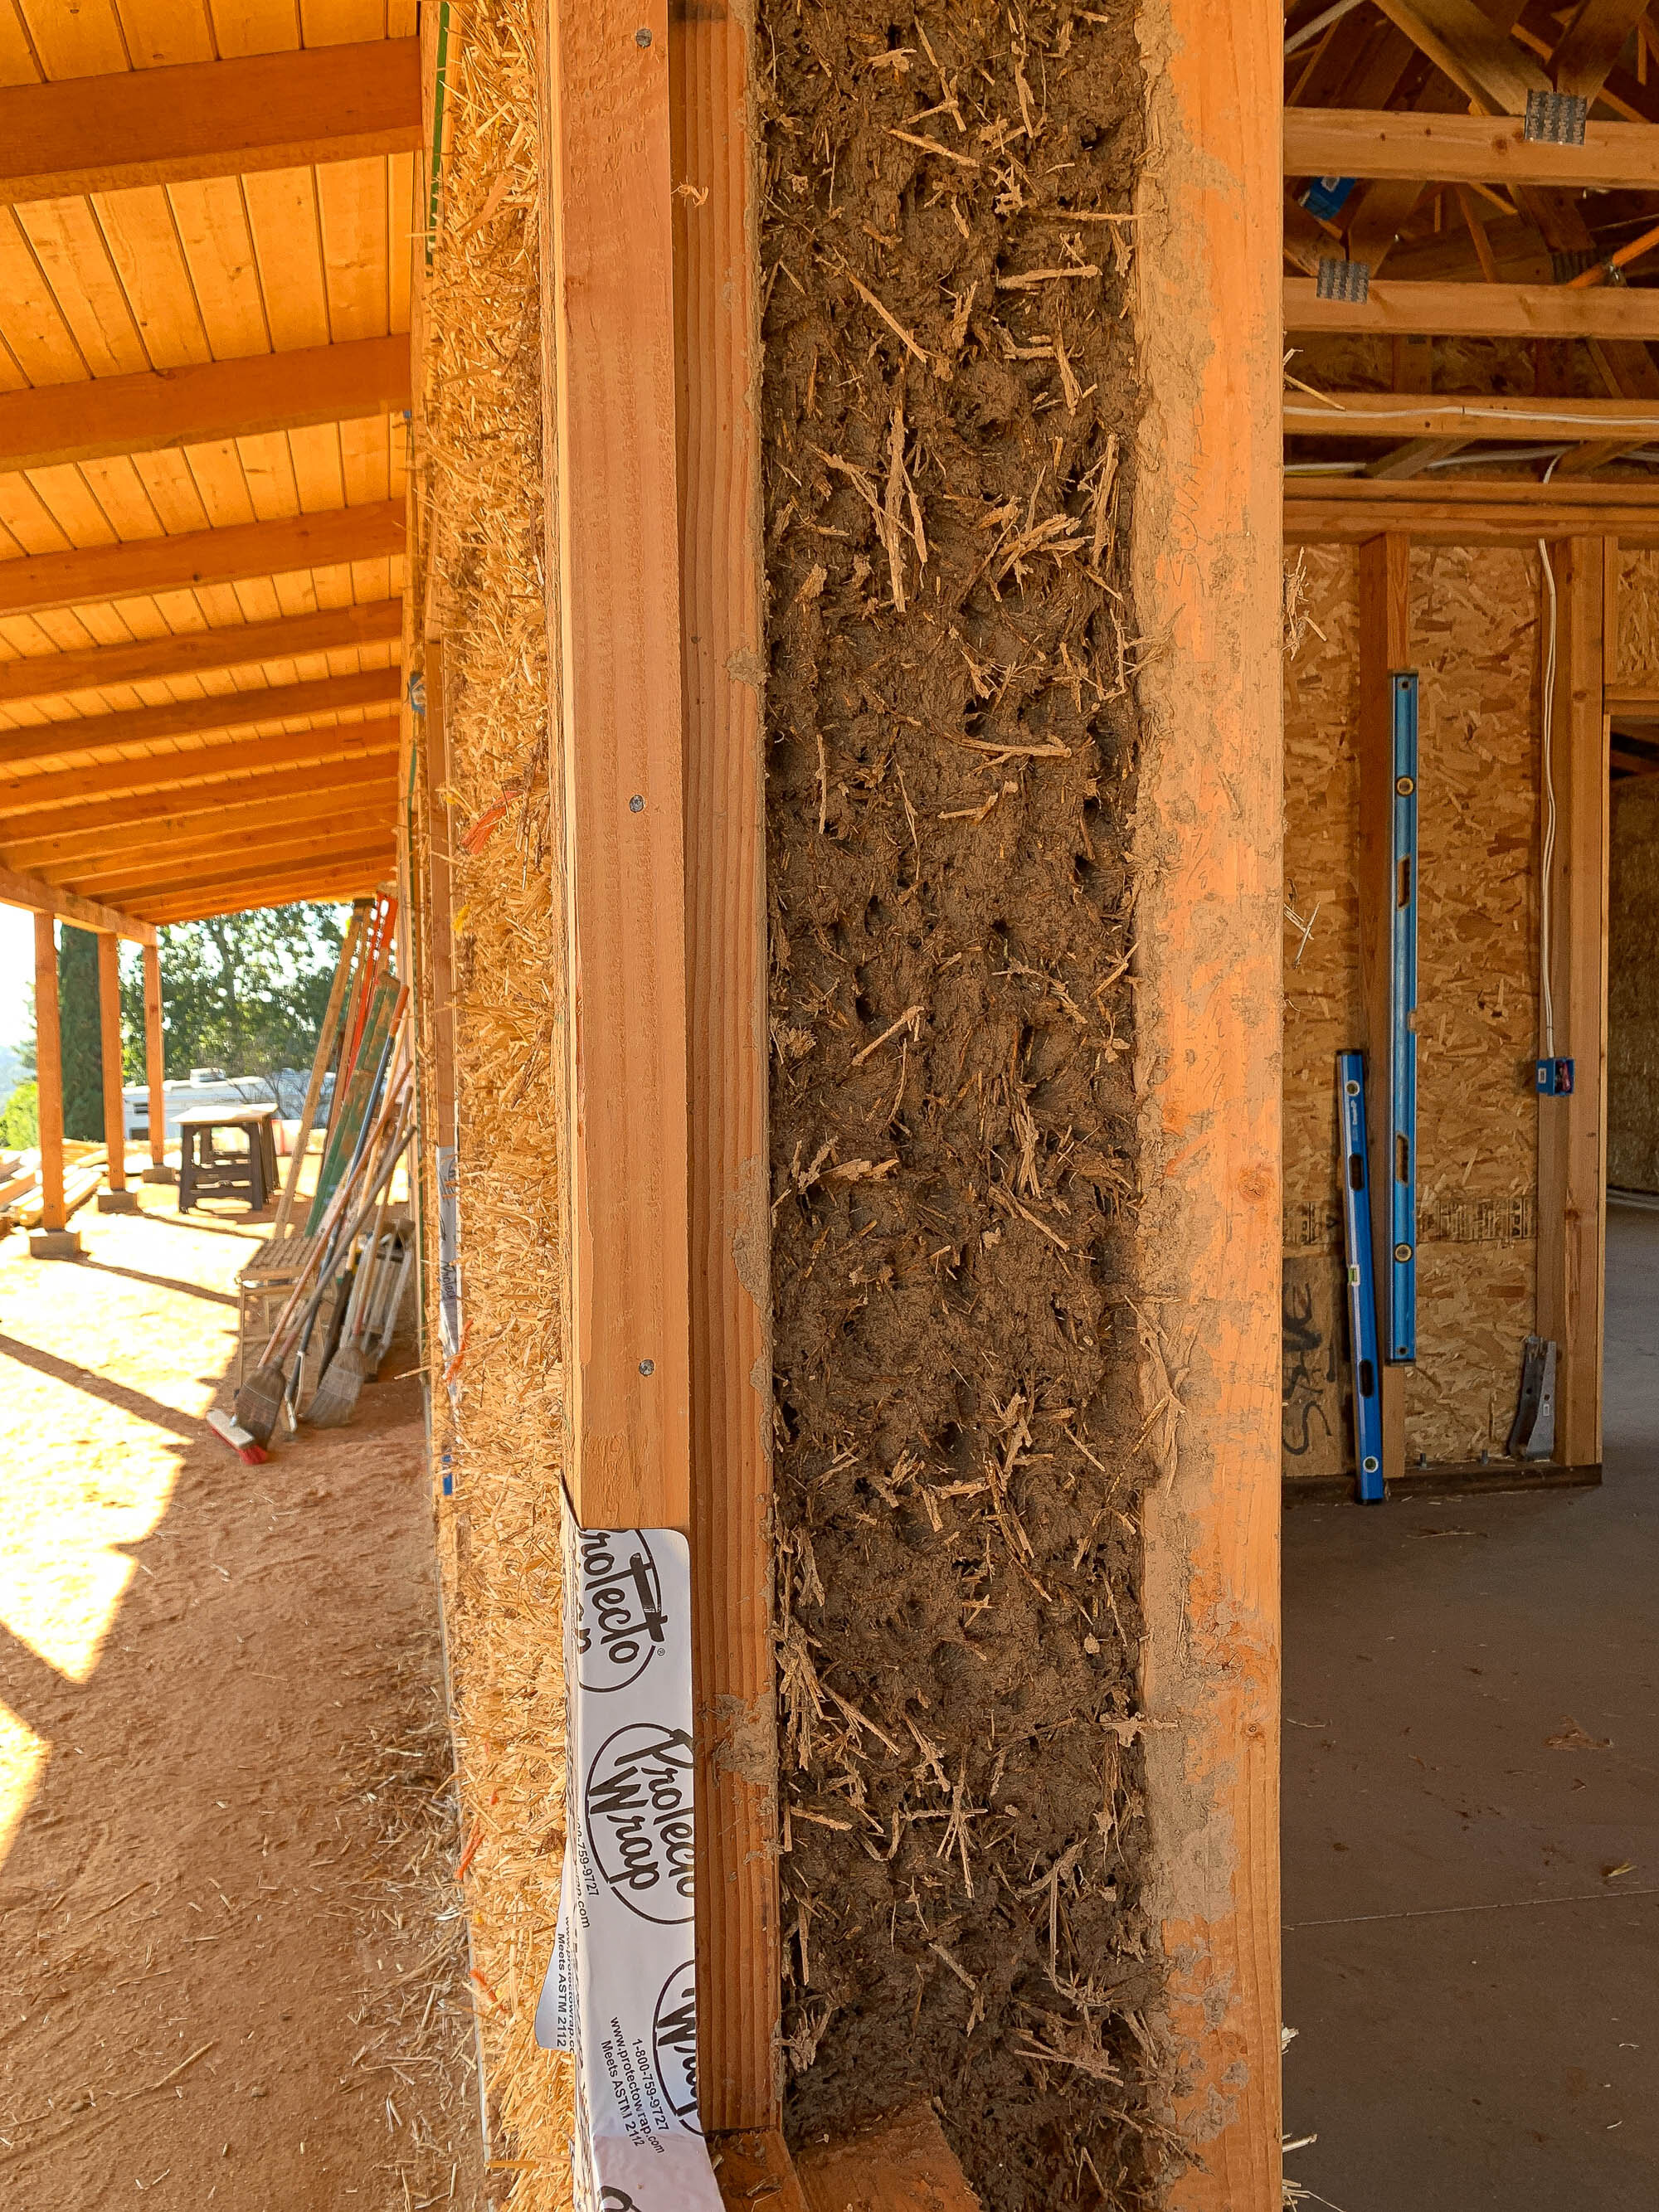 The Gold Hive Straw Bale Construction-9654.jpg